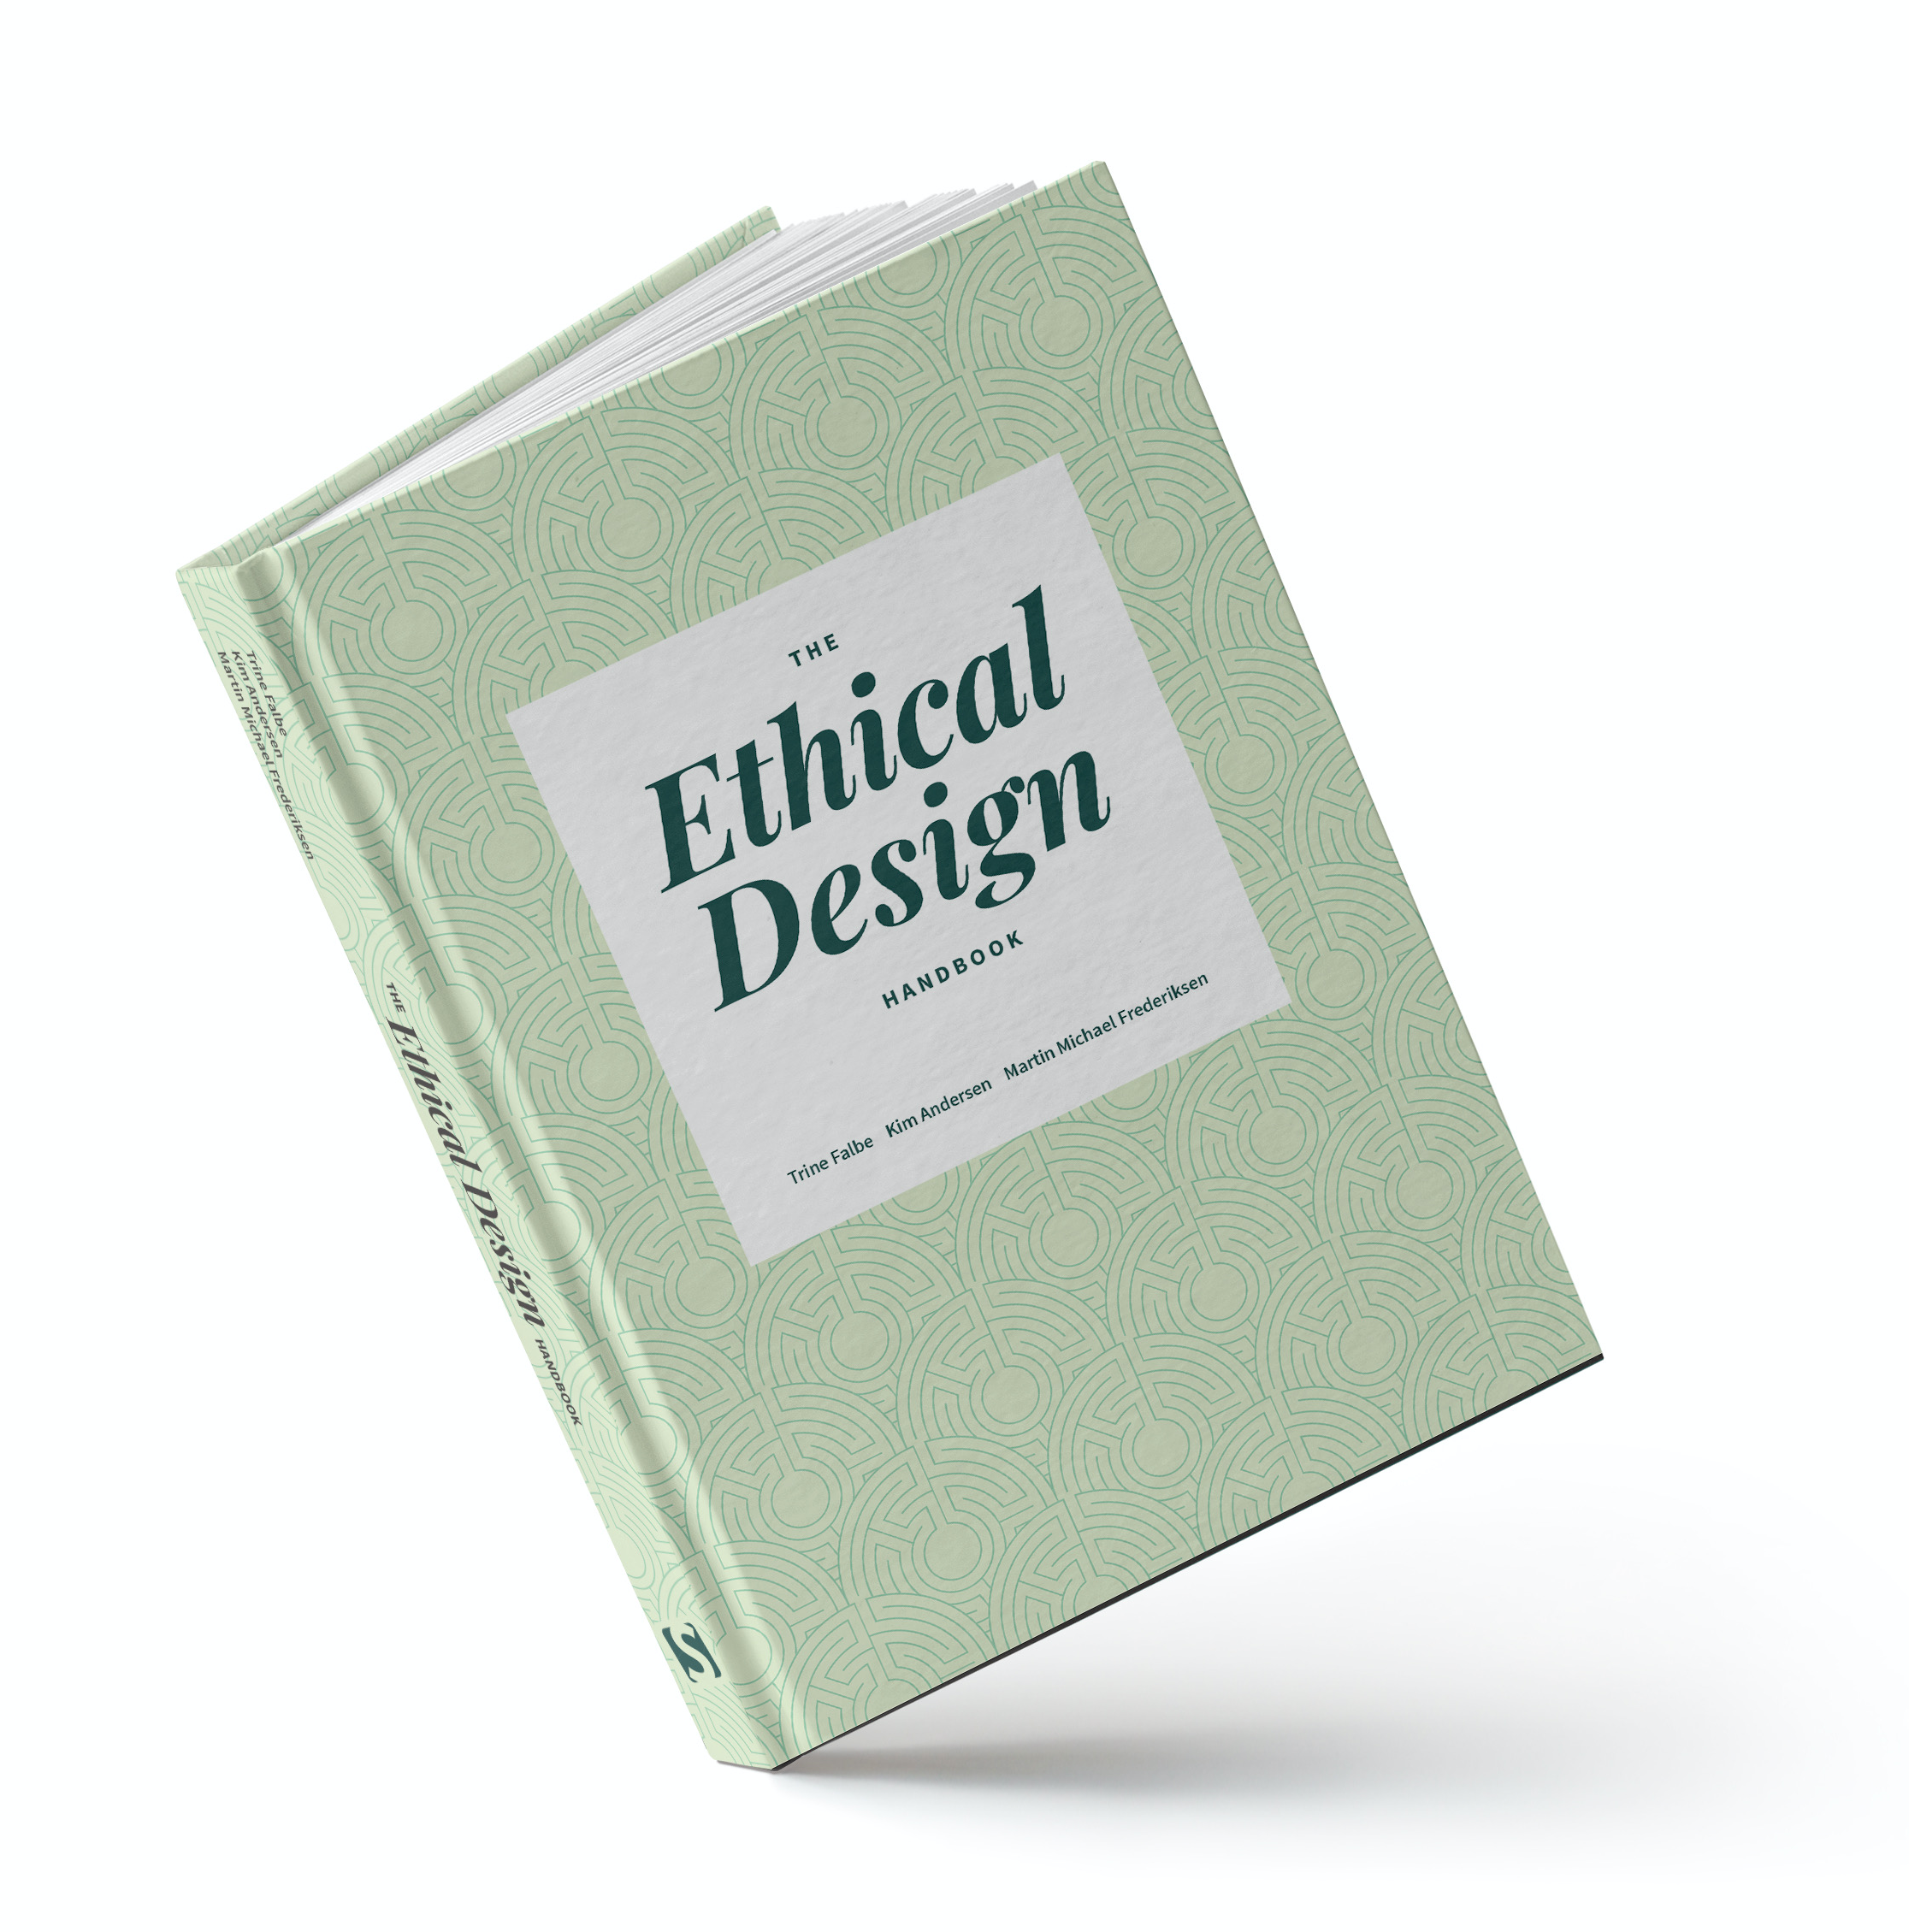 The cover of the Ethical Design Handbook